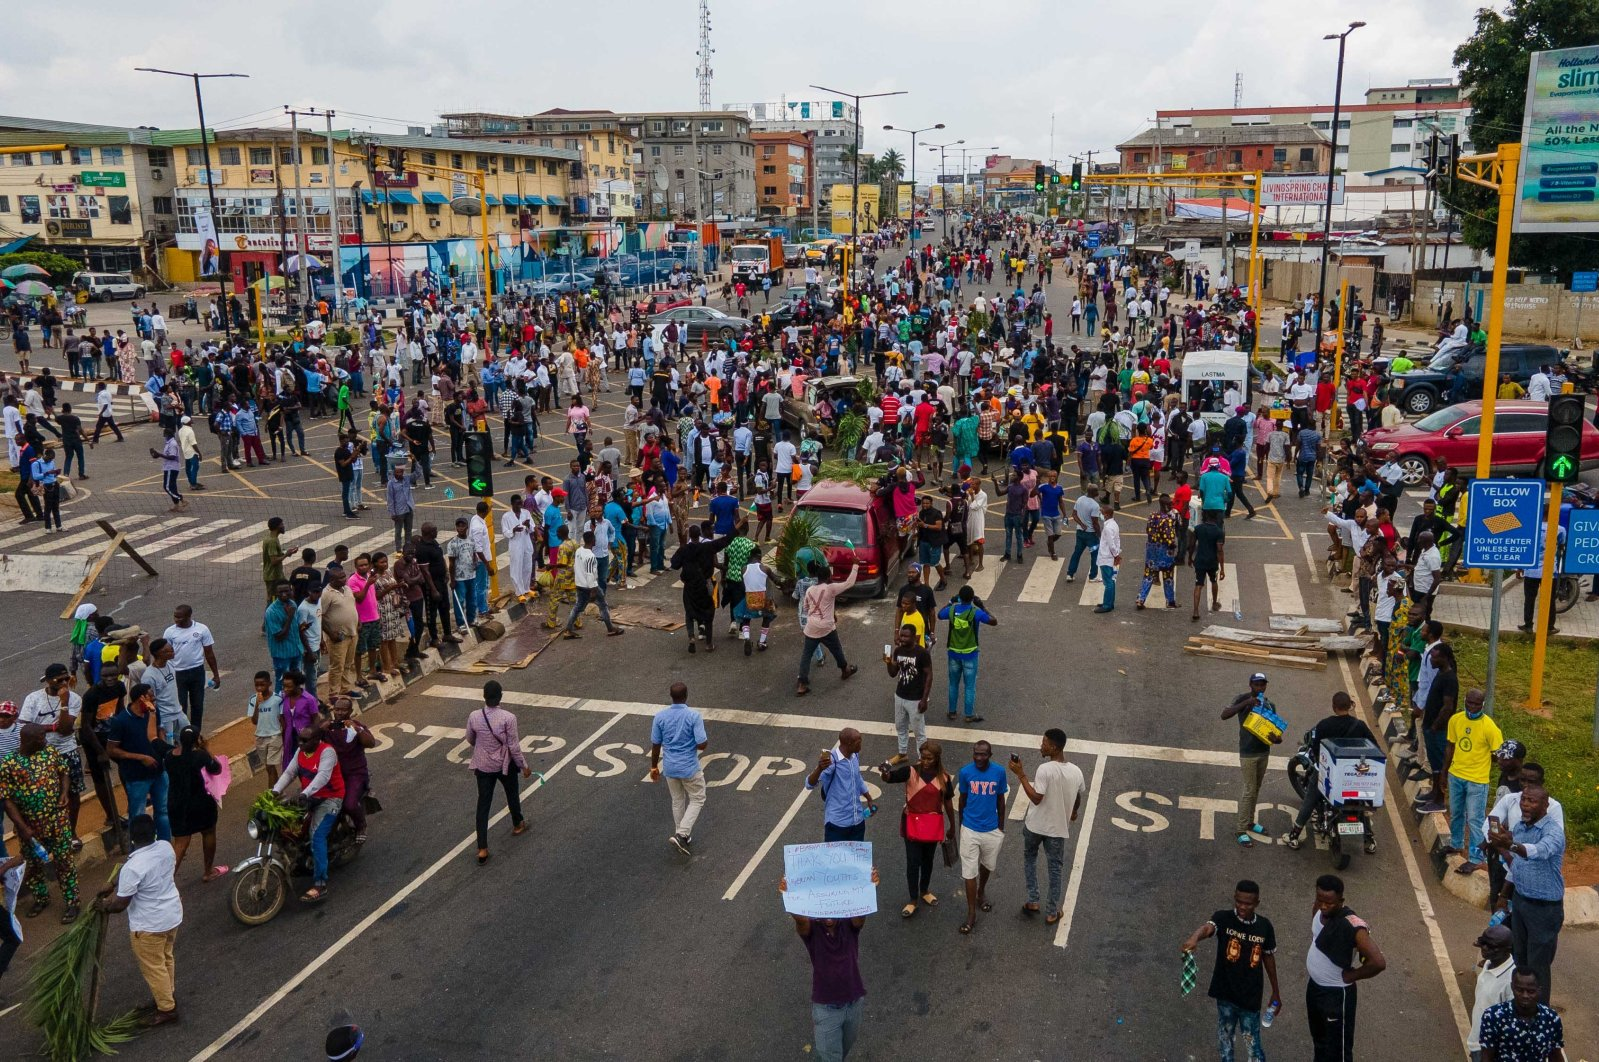 Protesters swarm the Allen Avenue roundabout during a demonstration in support of the ongoing protest against the police brutality, Lagos, Nigeria, Oct. 19, 2020. (AFP Photo)